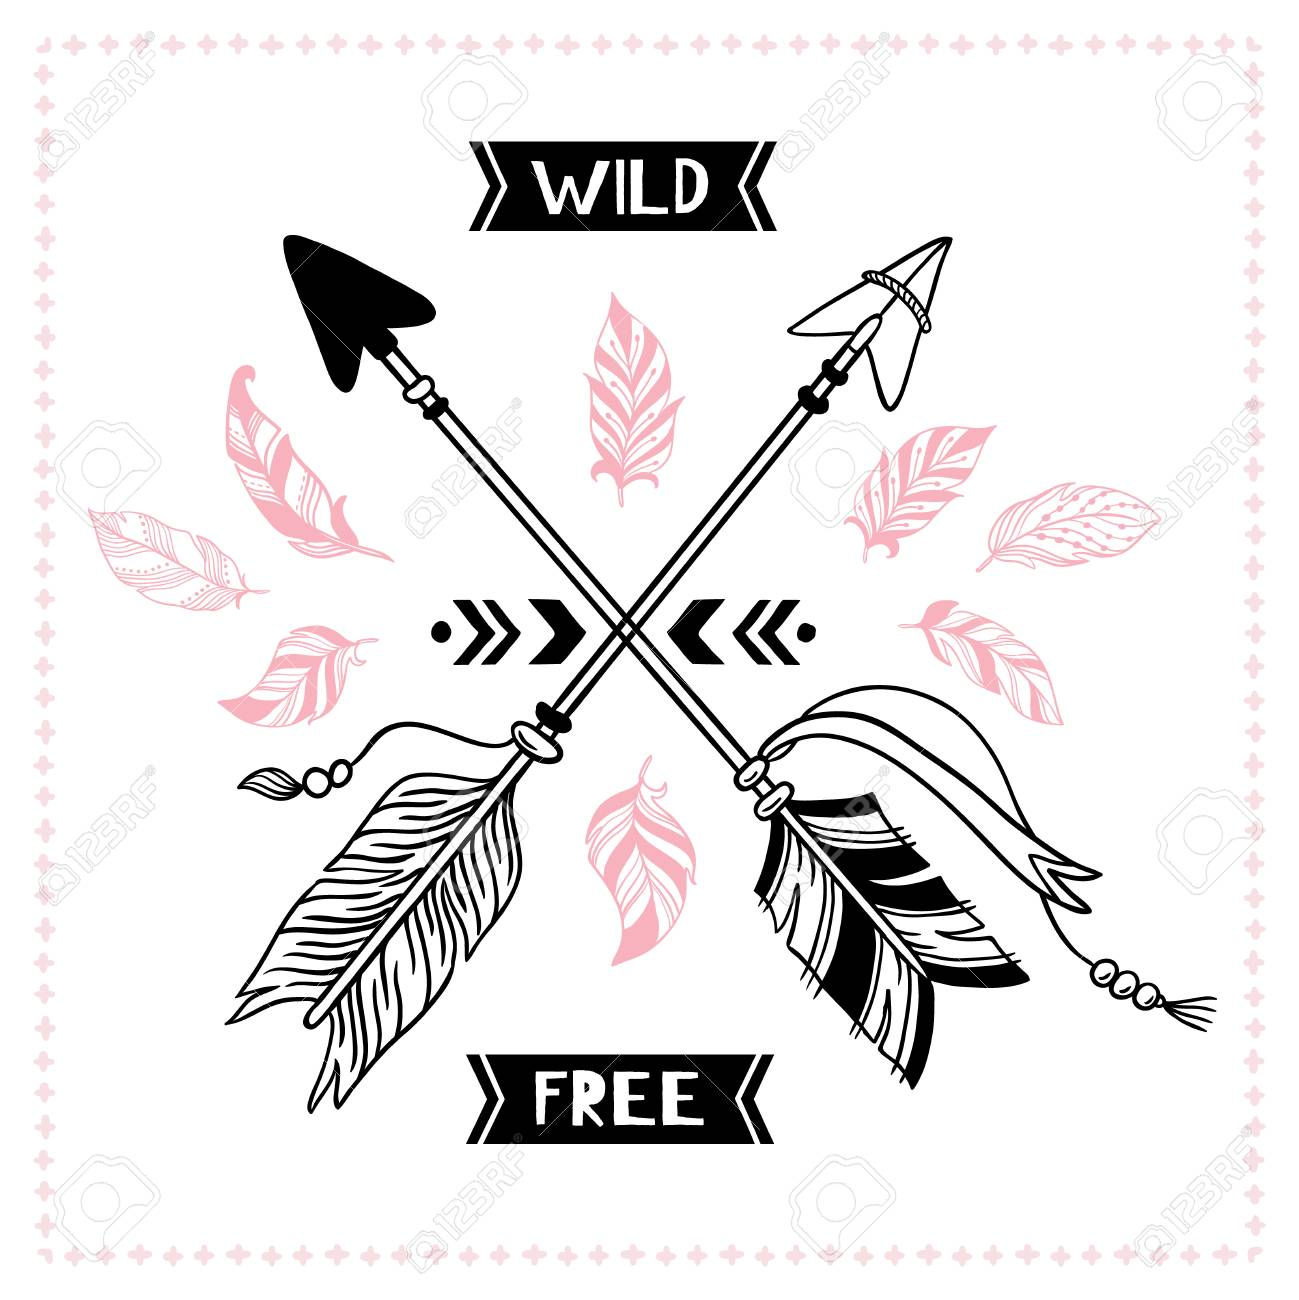 Wild free poster  Indian tribal cross arrows, american apache